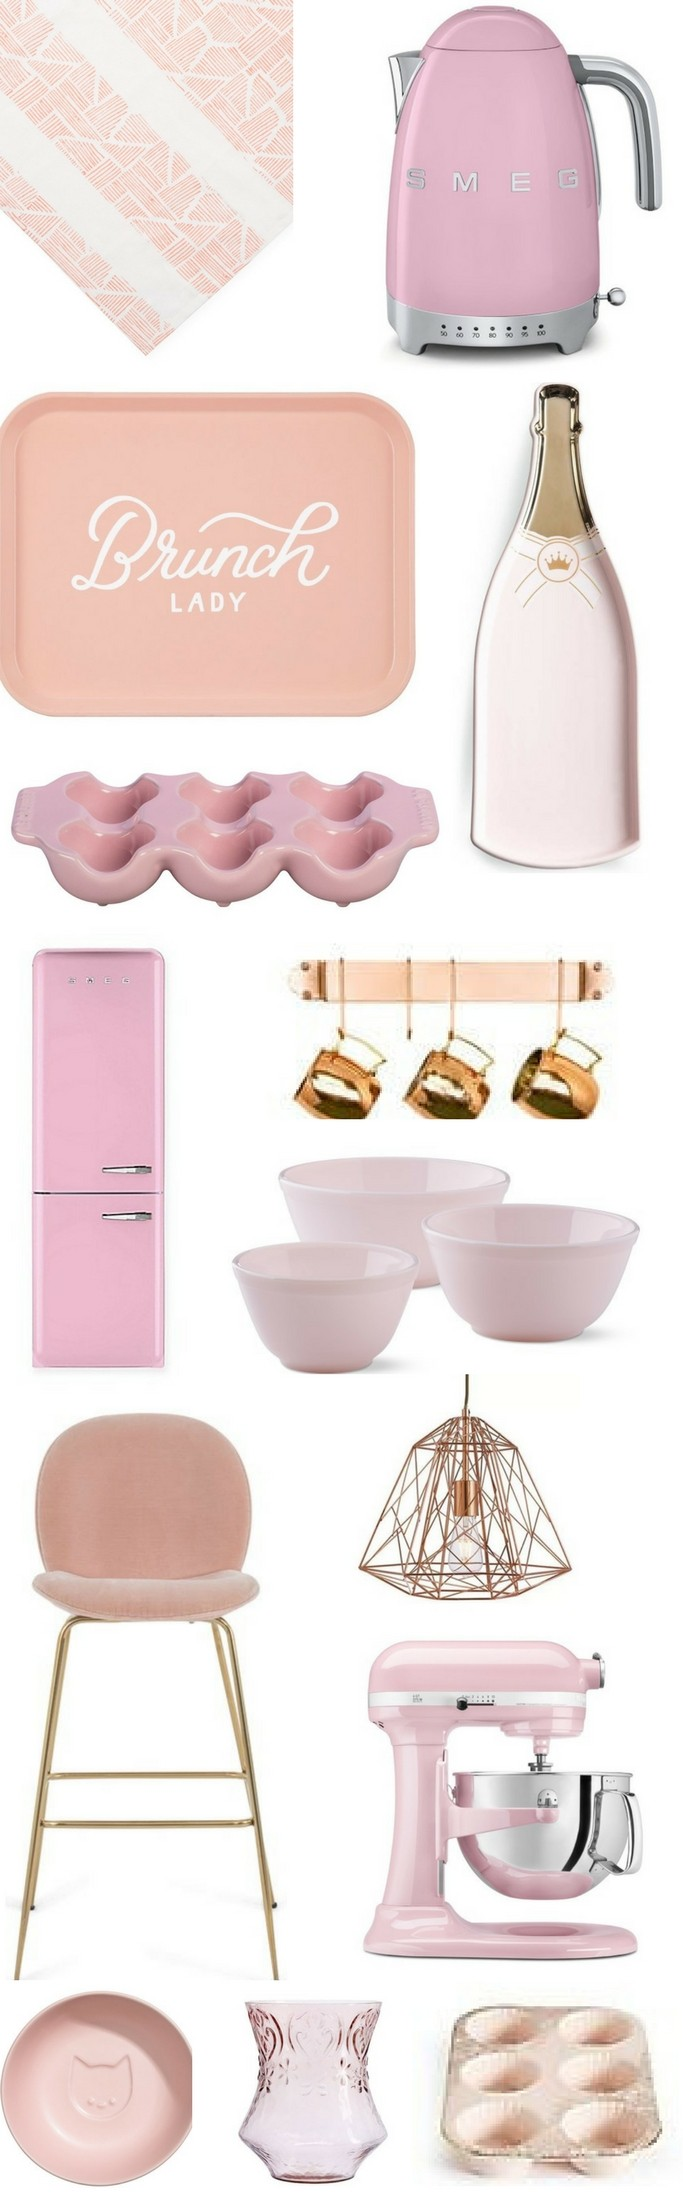 Cute Pink Kitchen Accessories and Decor • Chandeliers and Champagne